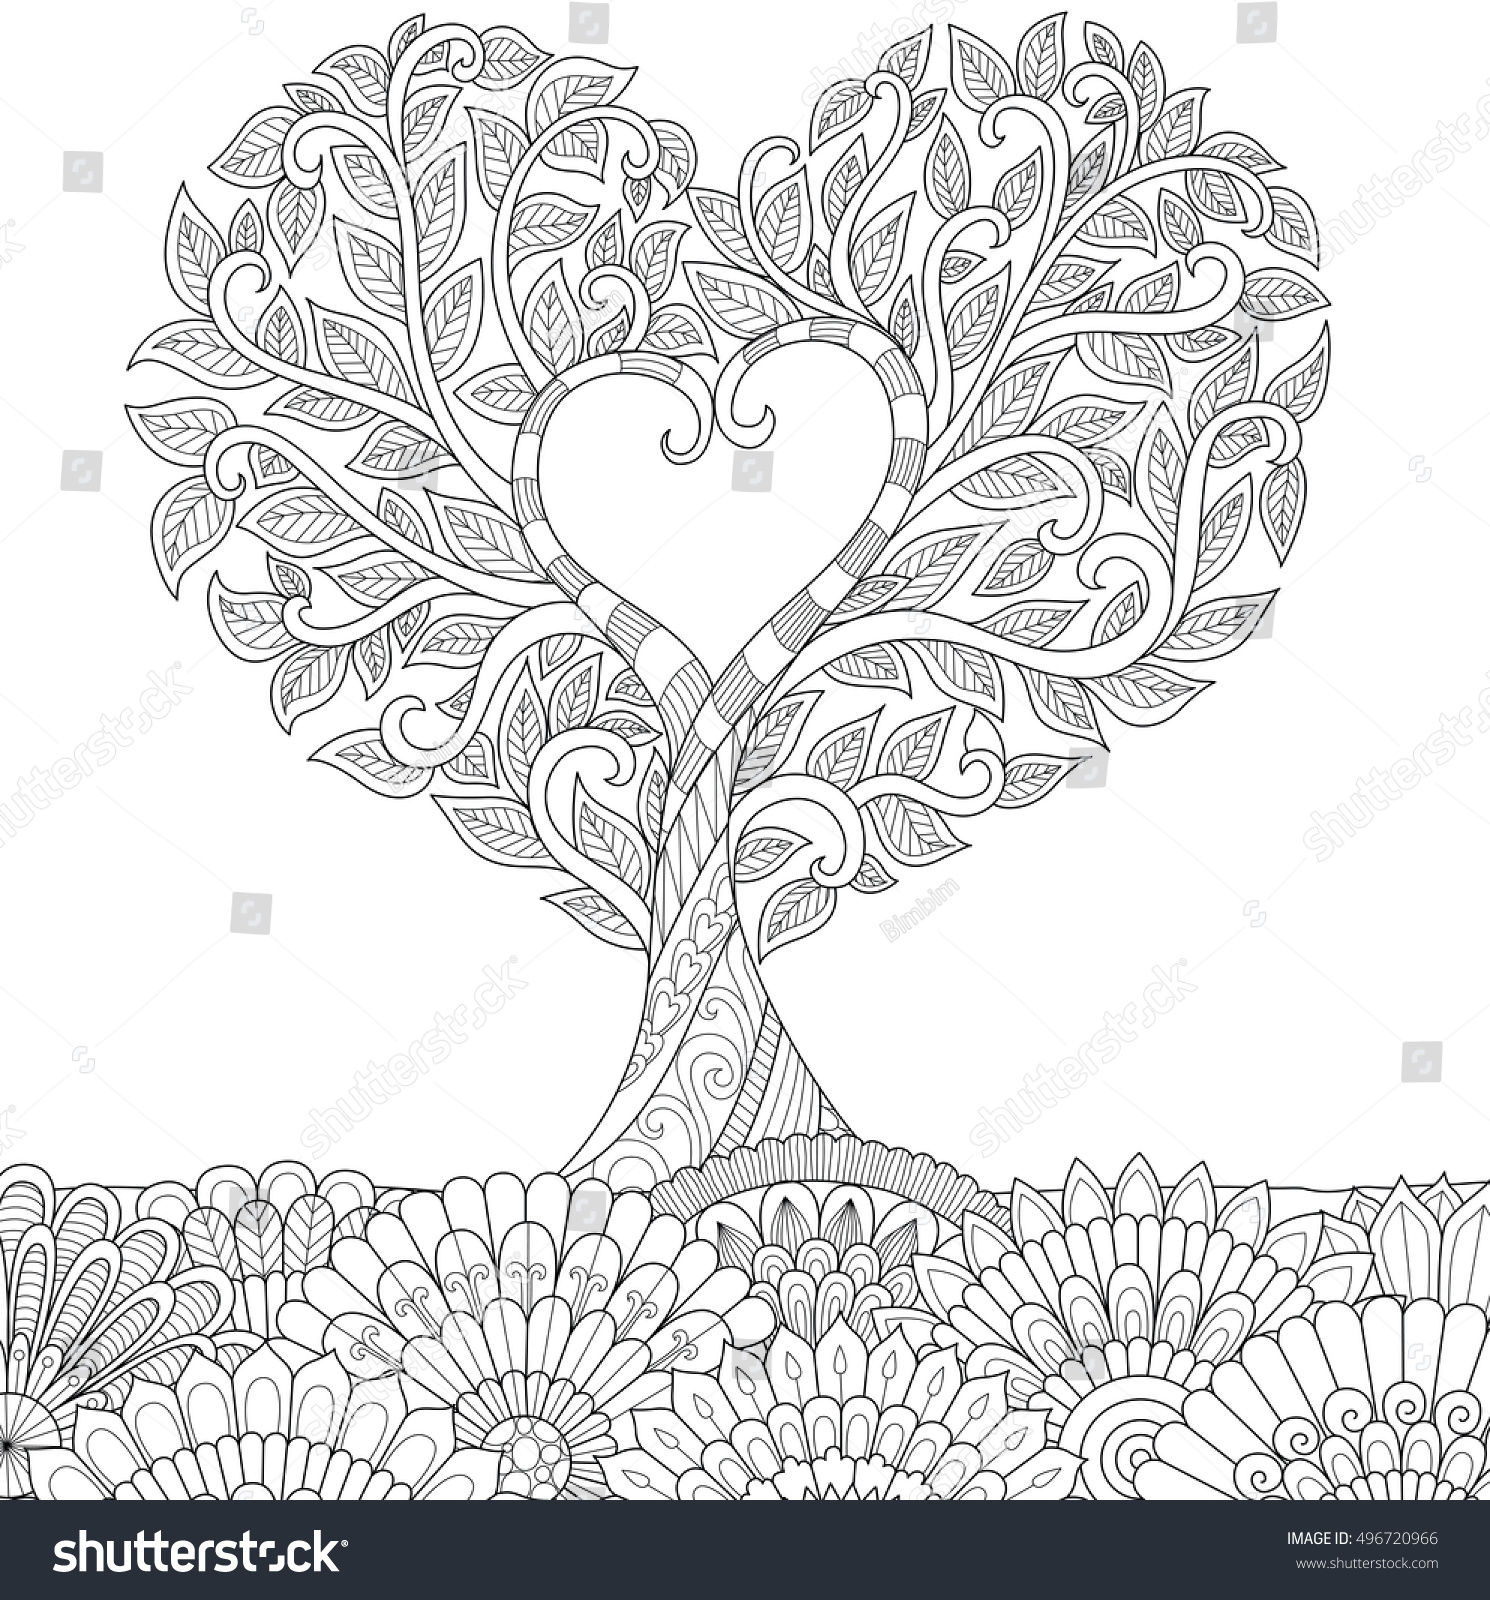 heart shape coloring page - flowers heart shape on floral ground stock vector